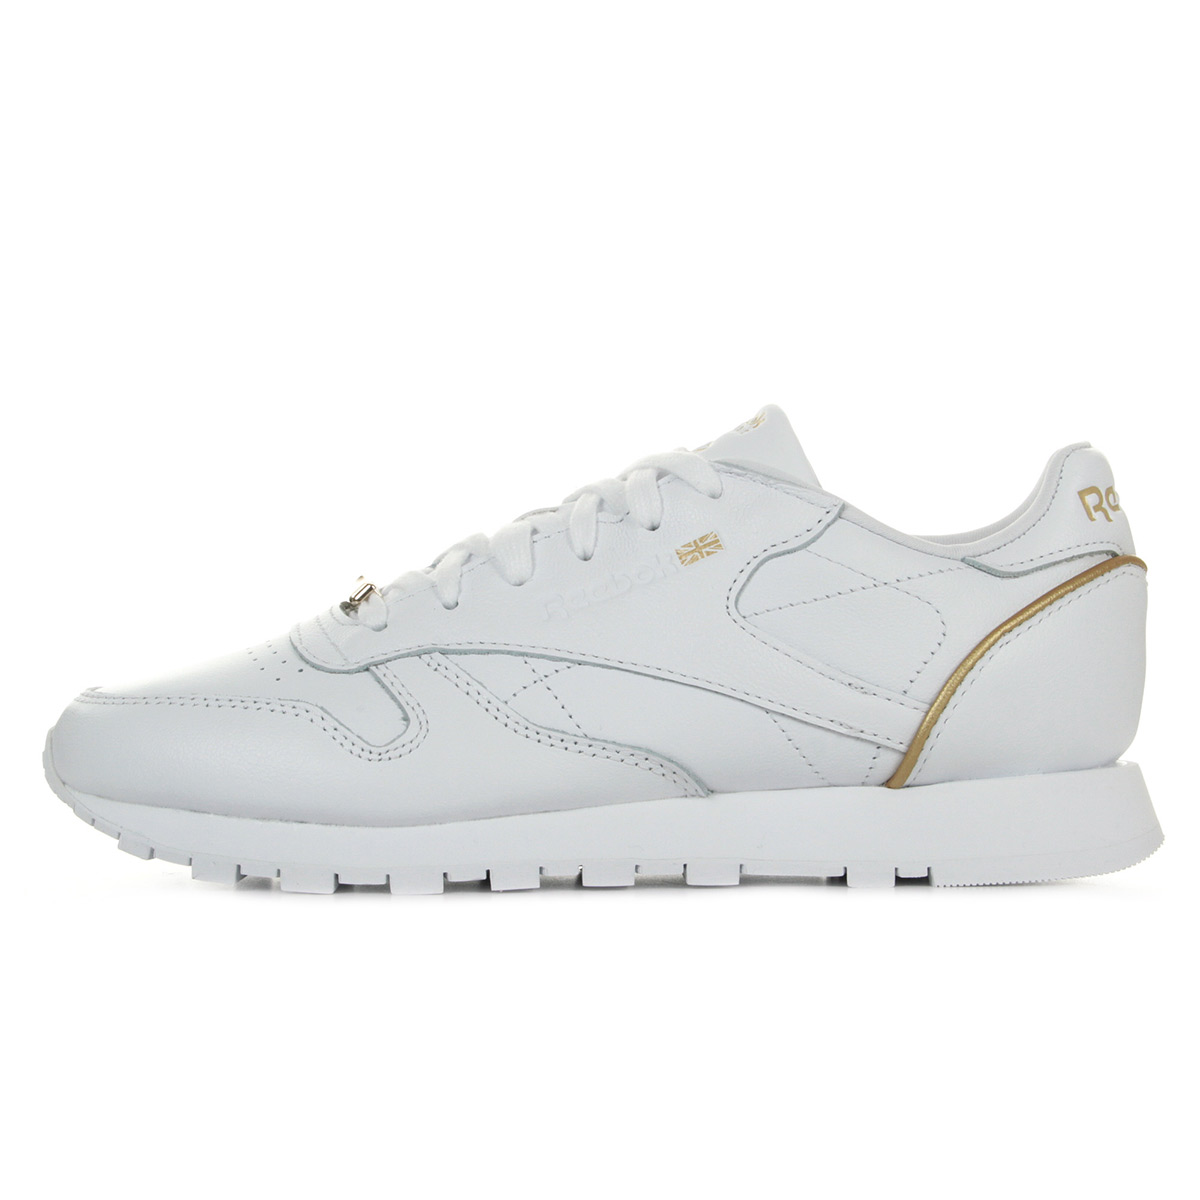 Reebok Classic Leather Hw BS9878, Baskets mode femme